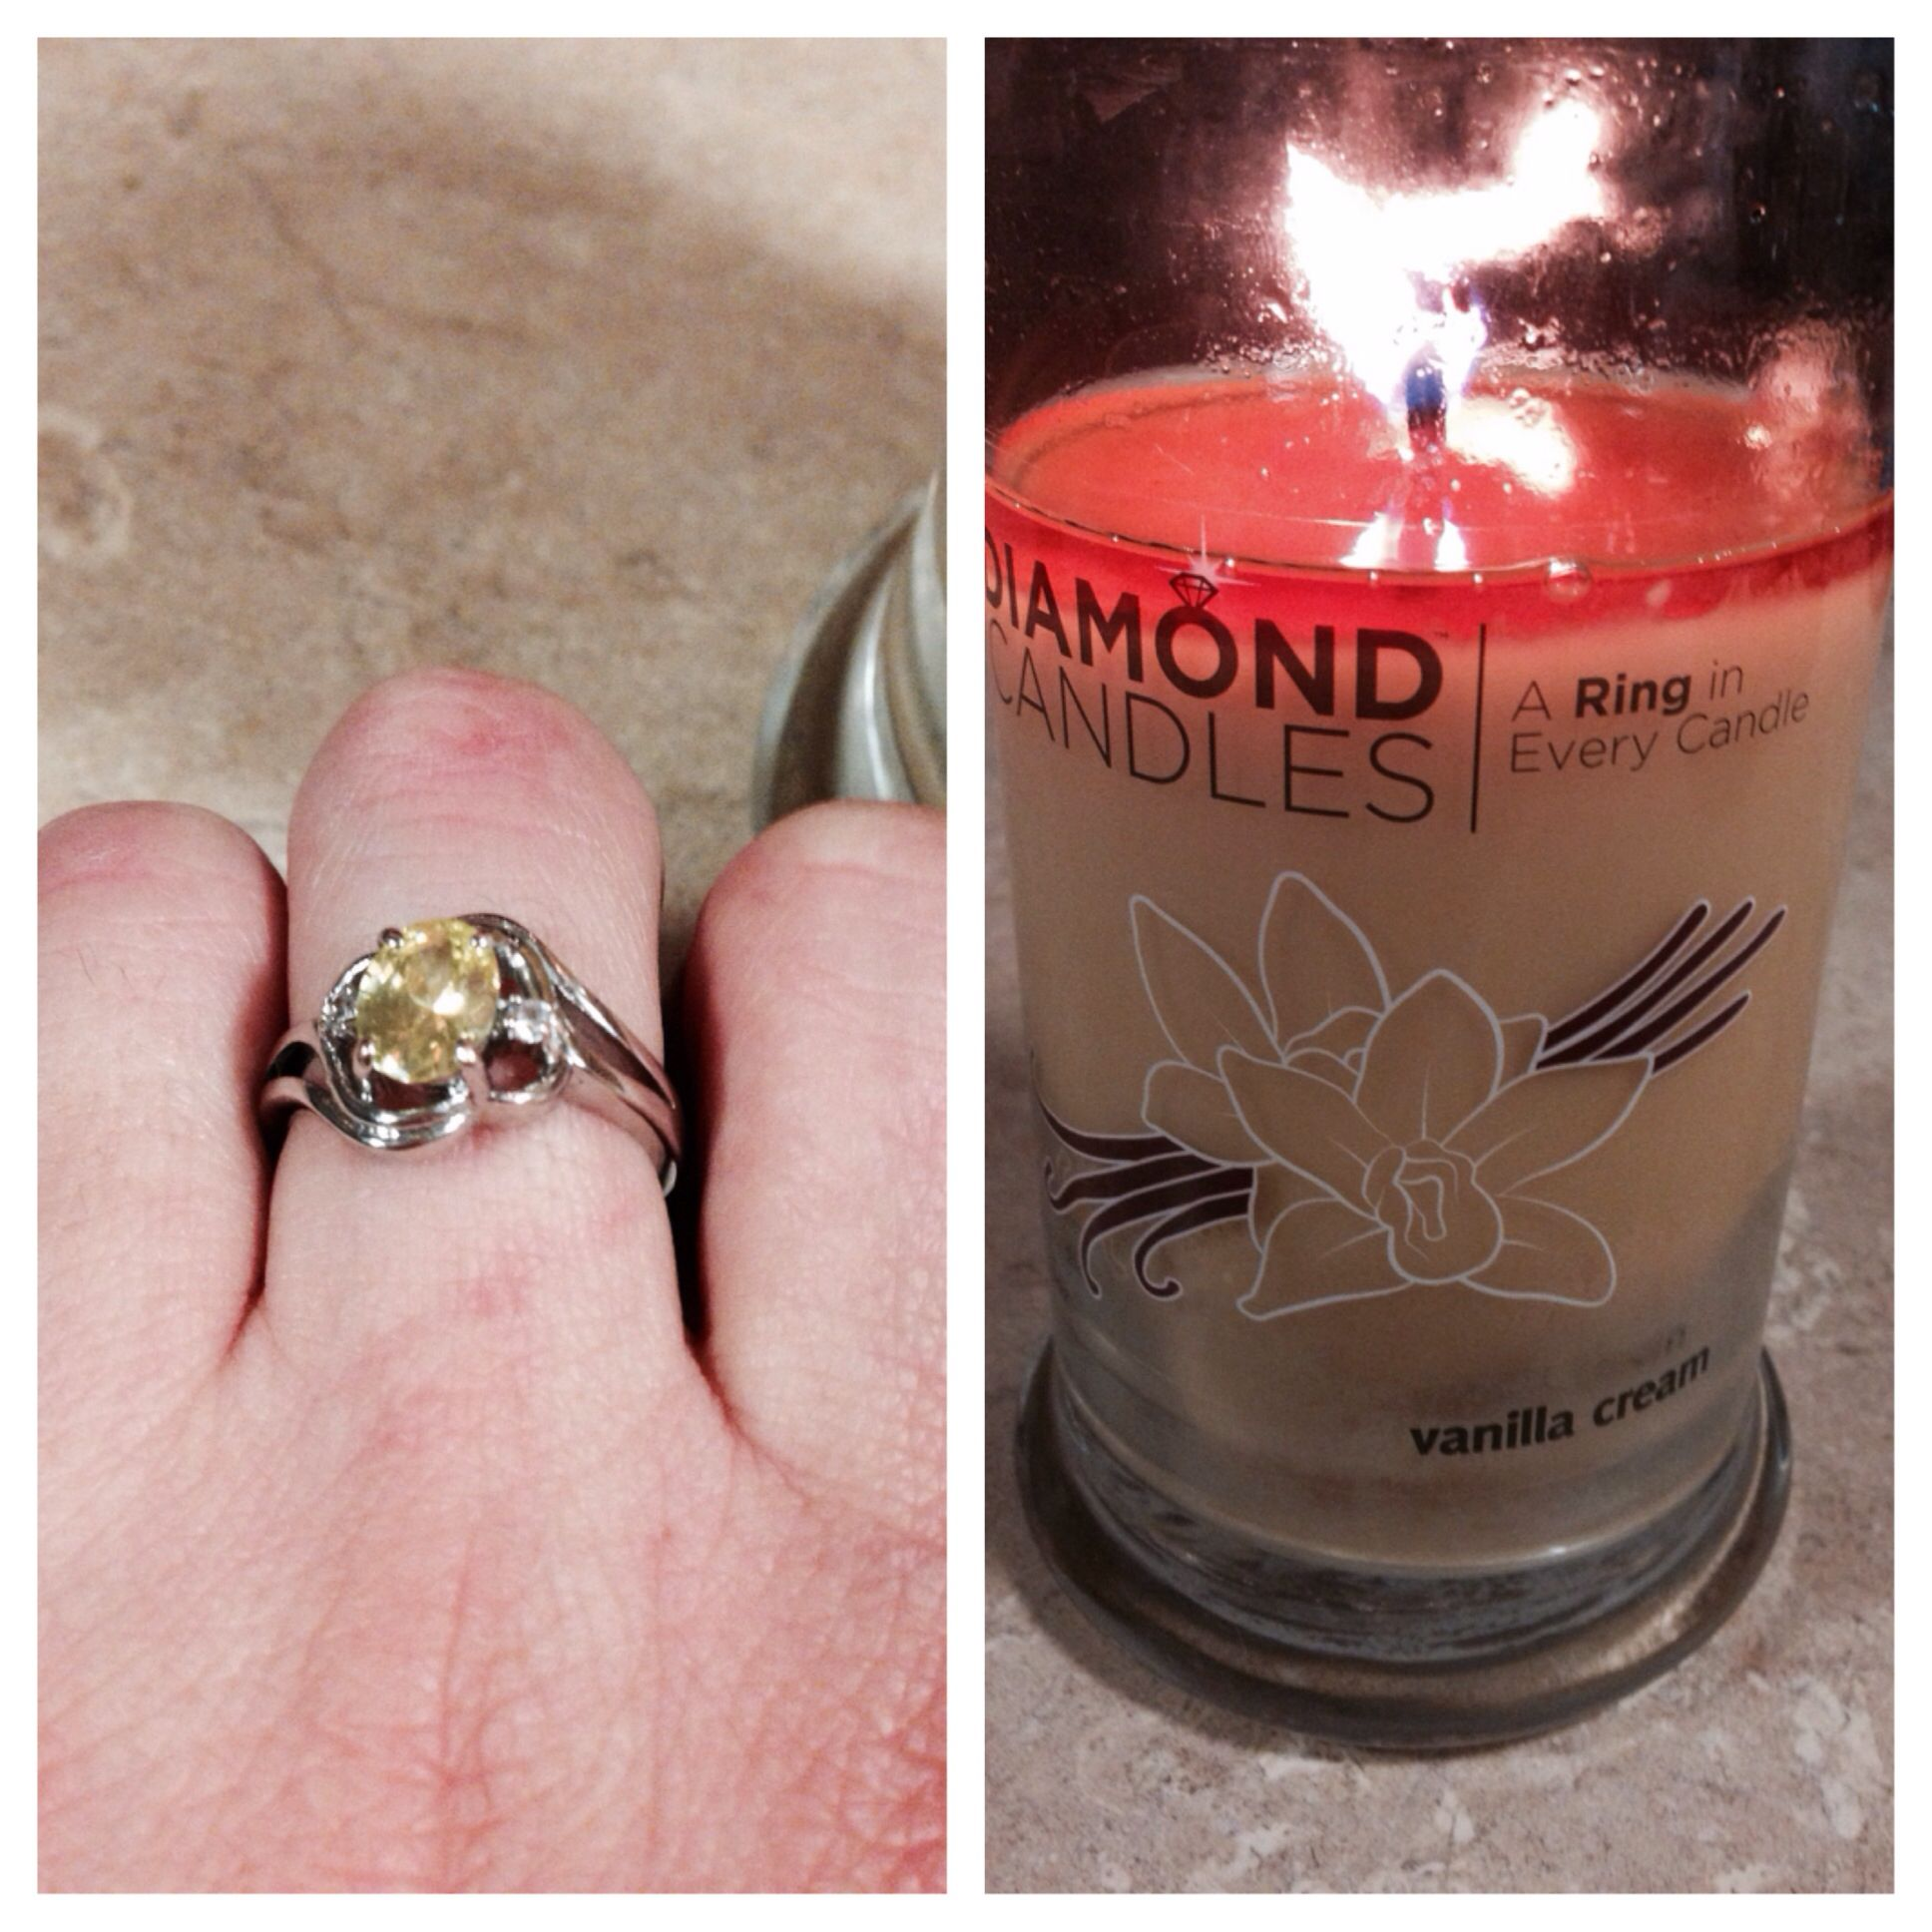 Diamond Candle Love Them I M Addicted Diamond Candles Candles Candle Jars